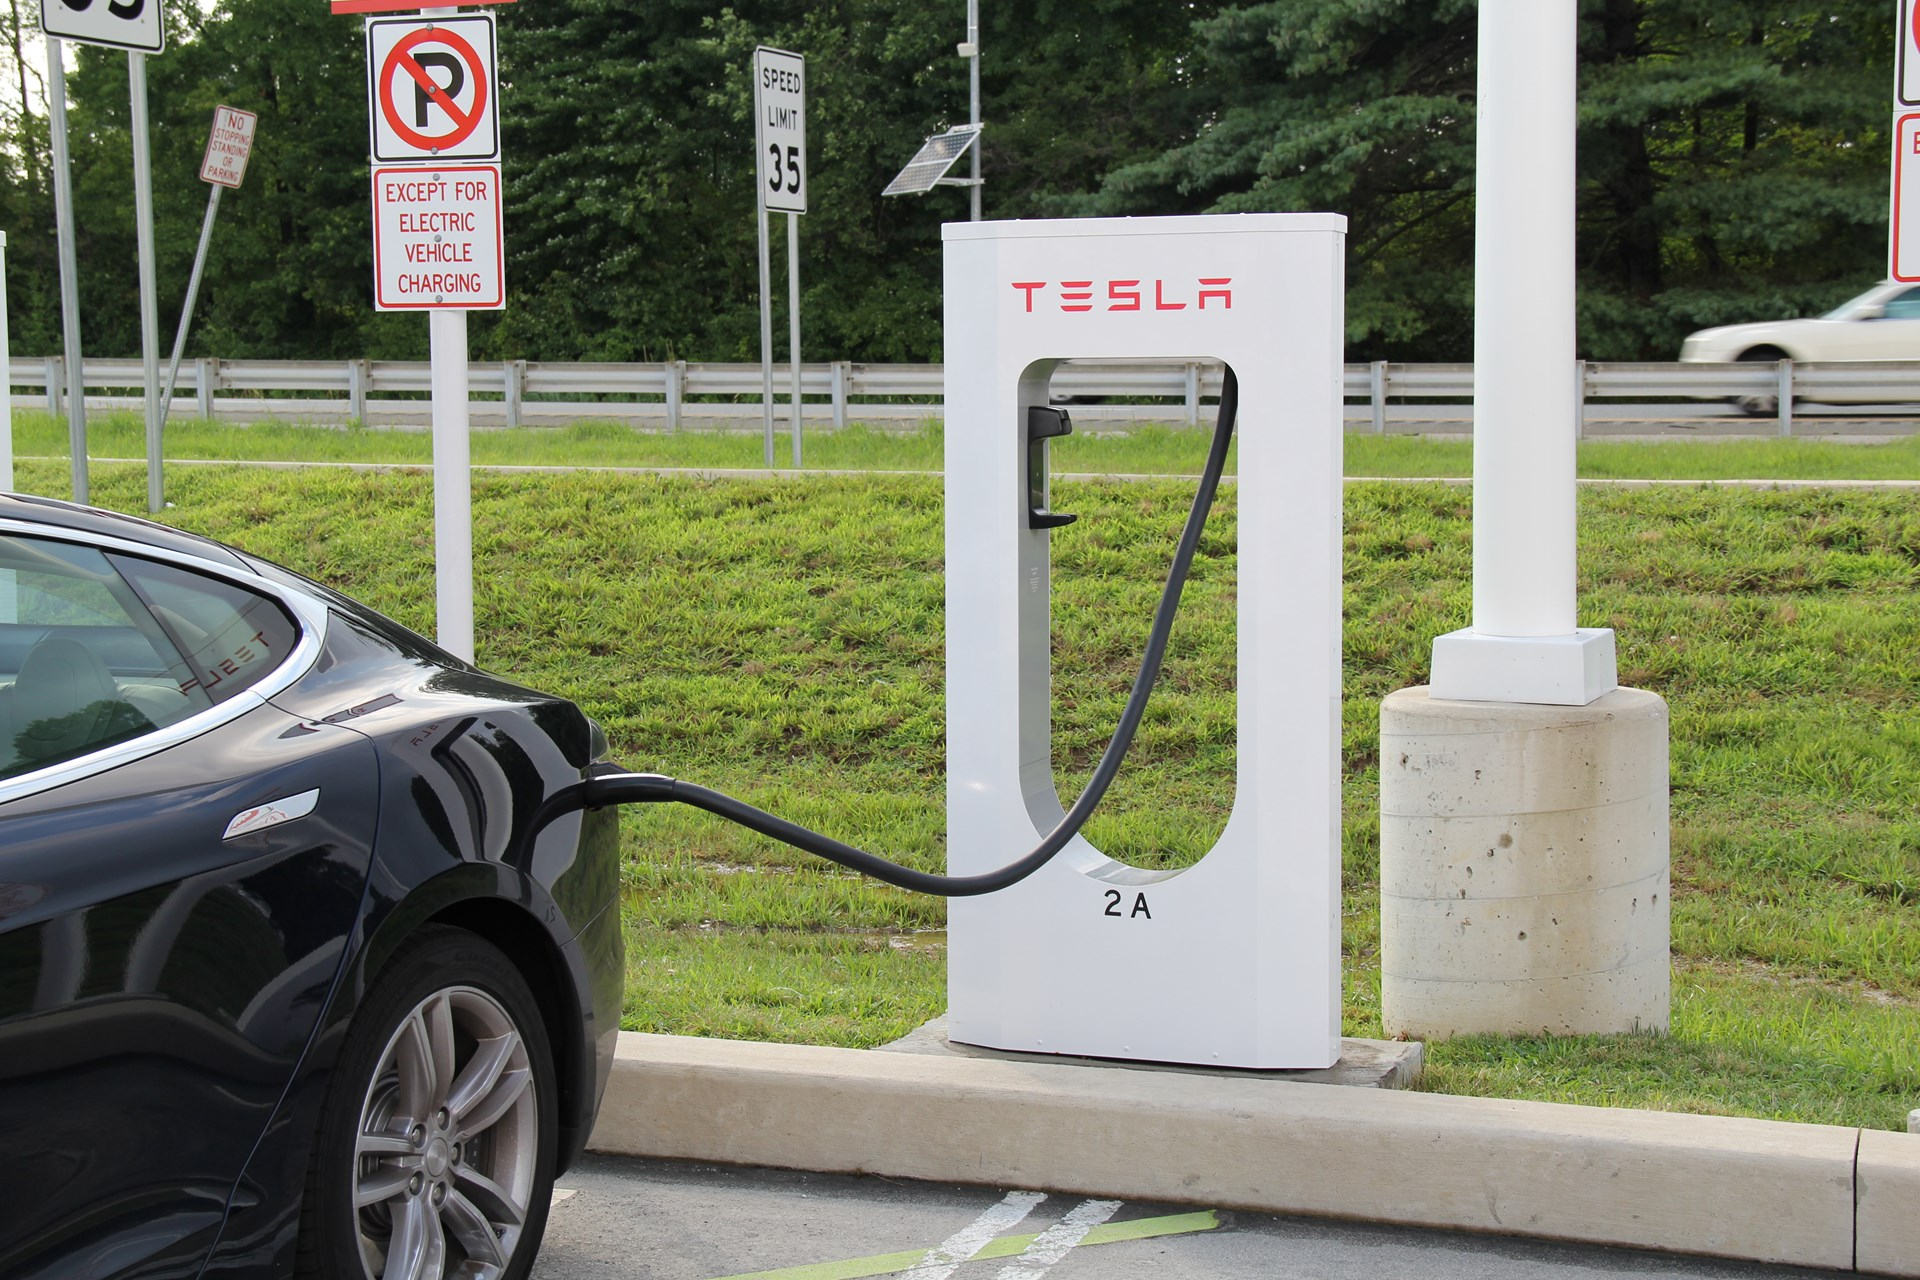 Electric Cars Vs Gas Cars >> Electric Cars Vs Gas Cars Is The Conventional Wisdom Wrong